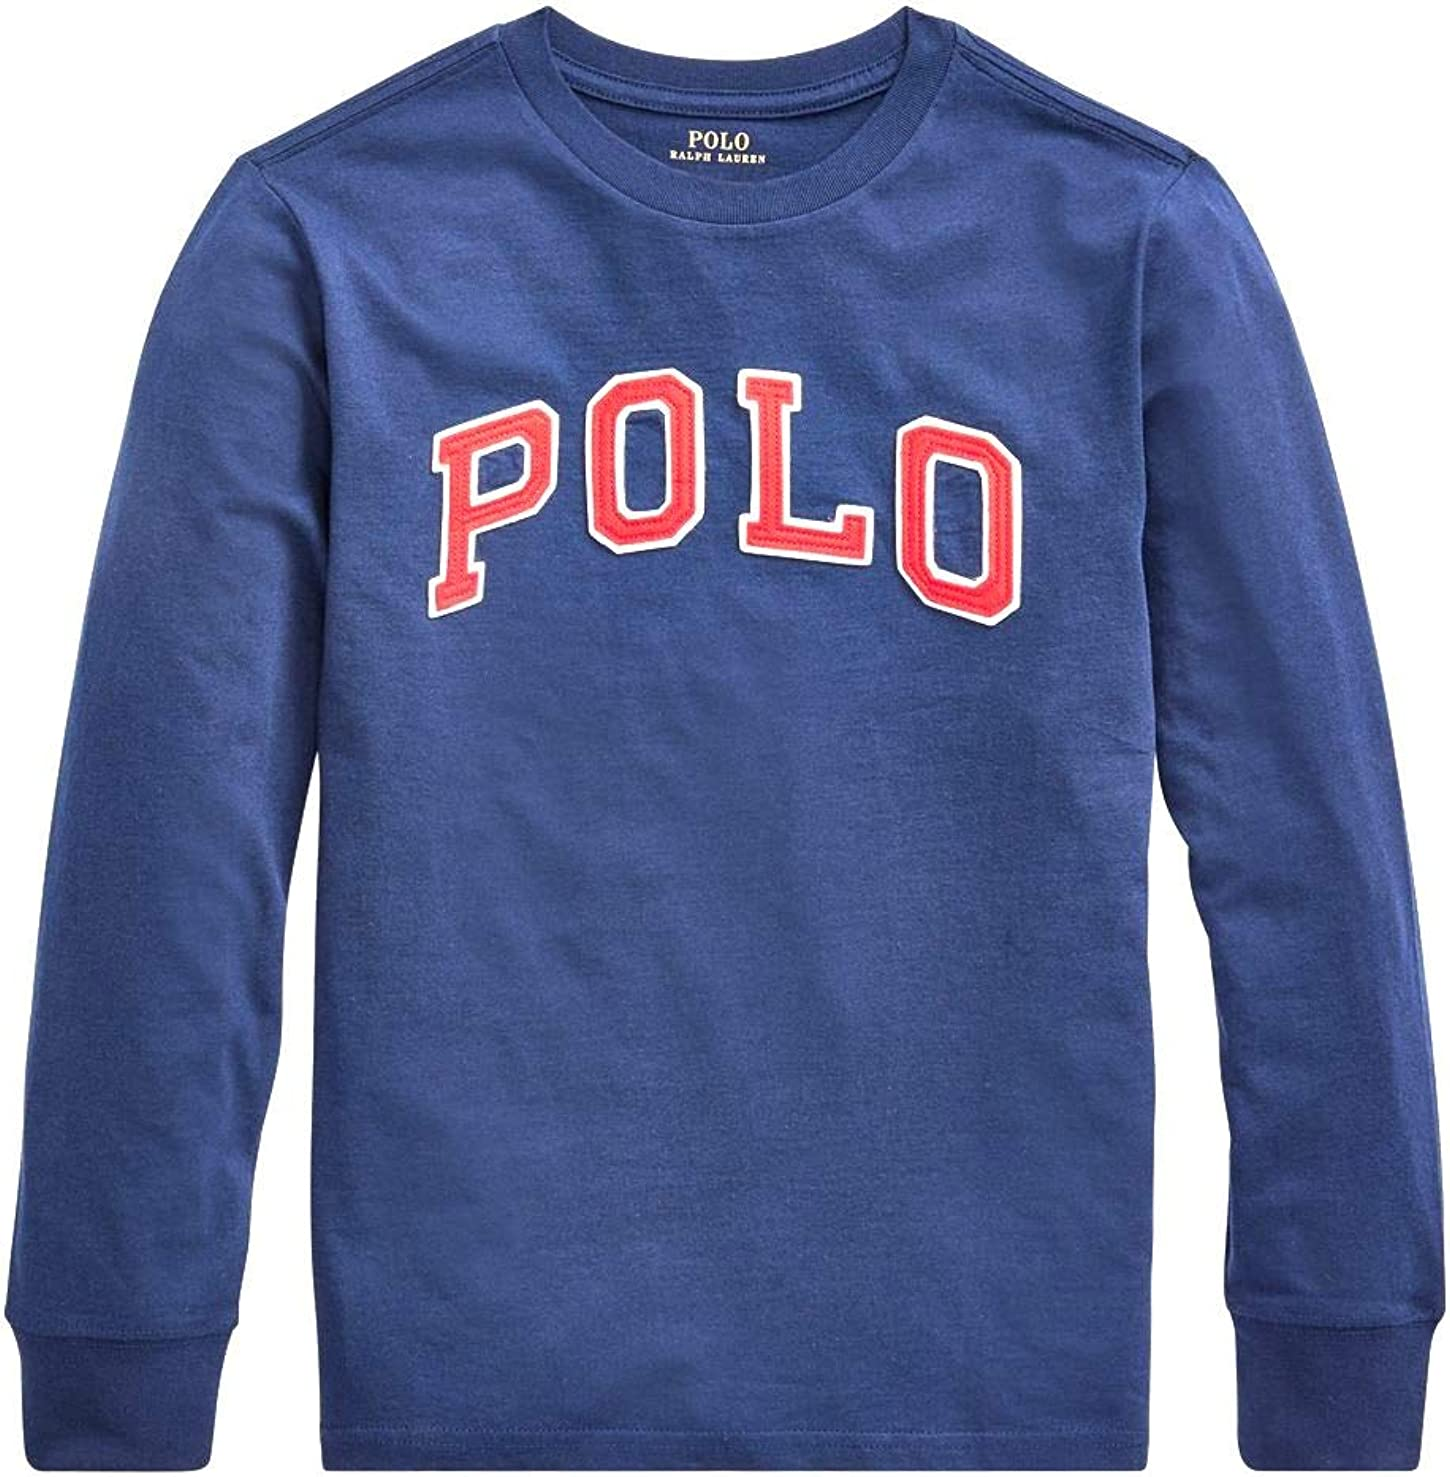 Polo Ralph Lauren - Camiseta Manga Larga LS CN TP-TSH Fall I Navy ...